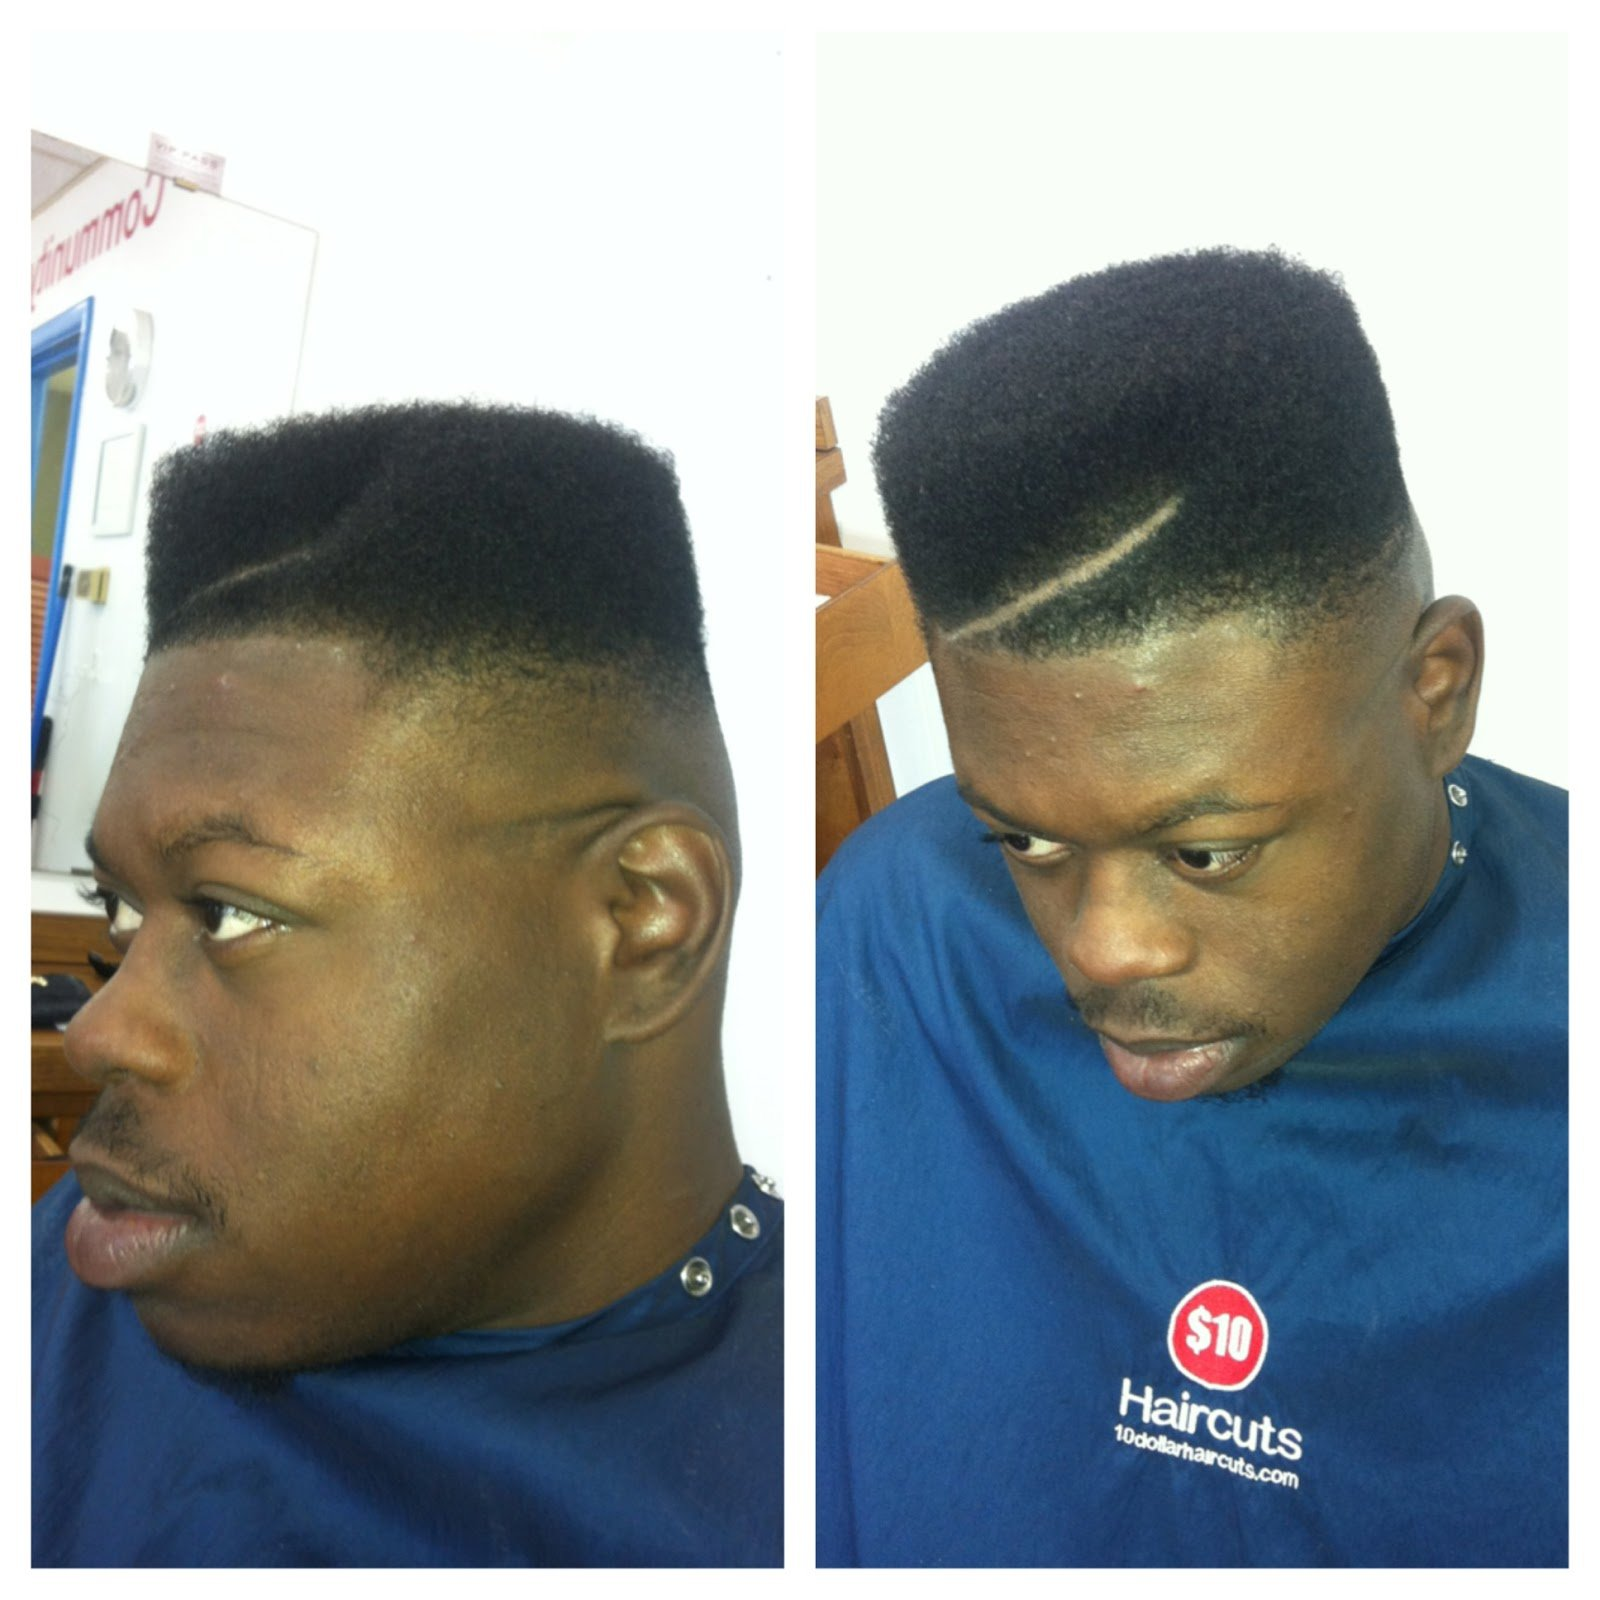 New 10 Dollar Haircuts 76011 Oh Yeah We Can Cut And Style Ideas With Pictures Original 1024 x 768